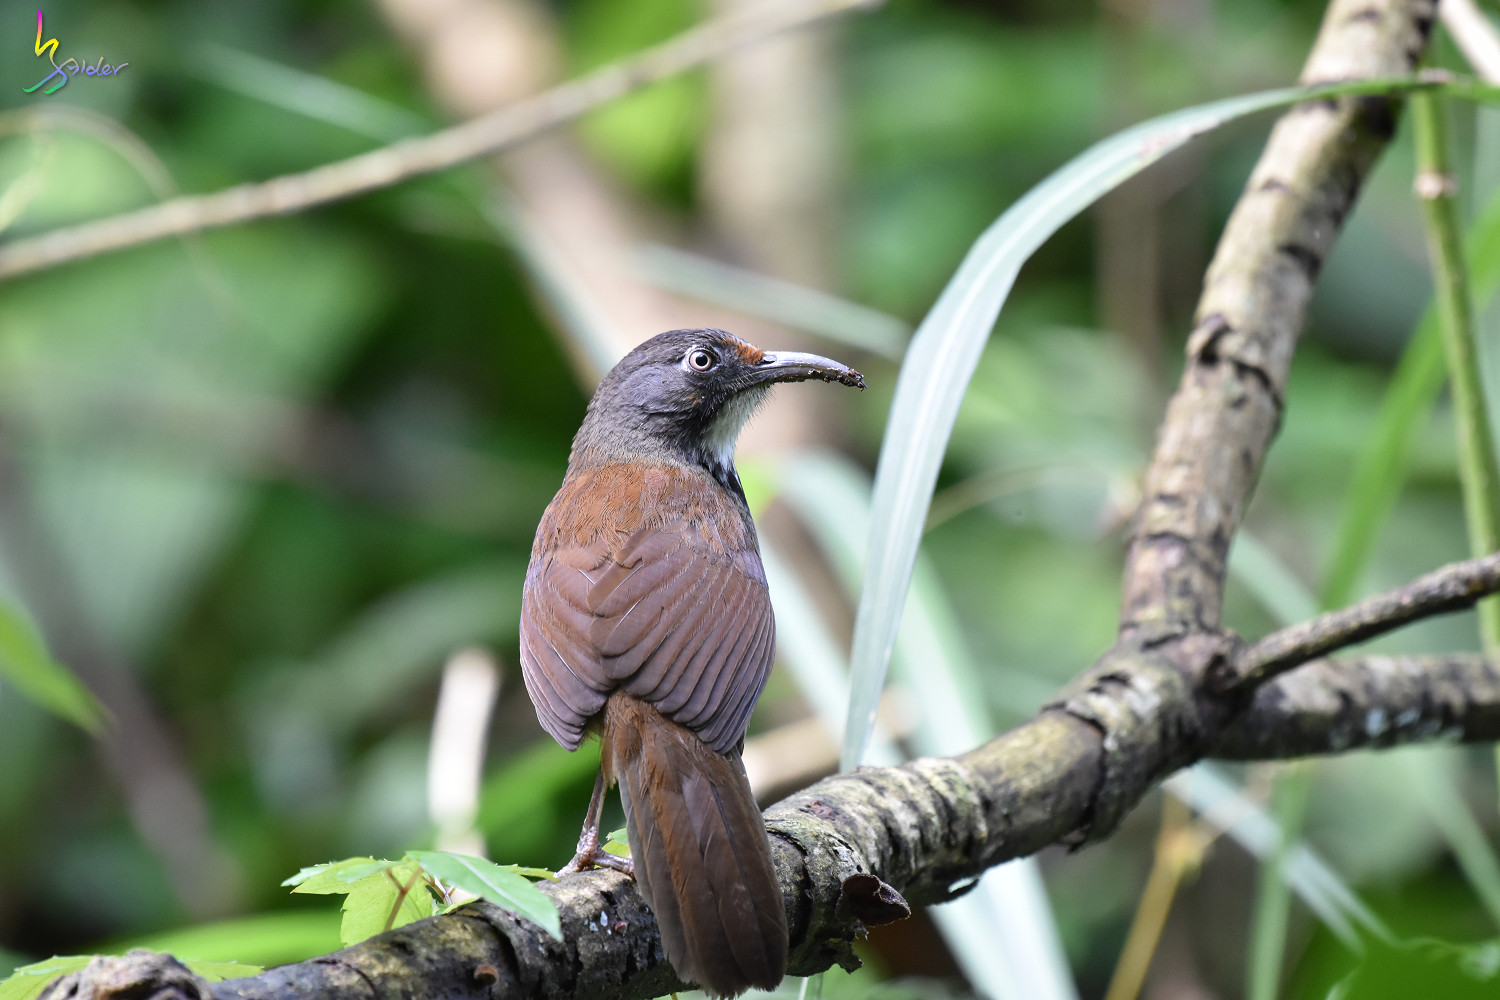 Rusty-cheeked_Scimitar-Babbler_0620